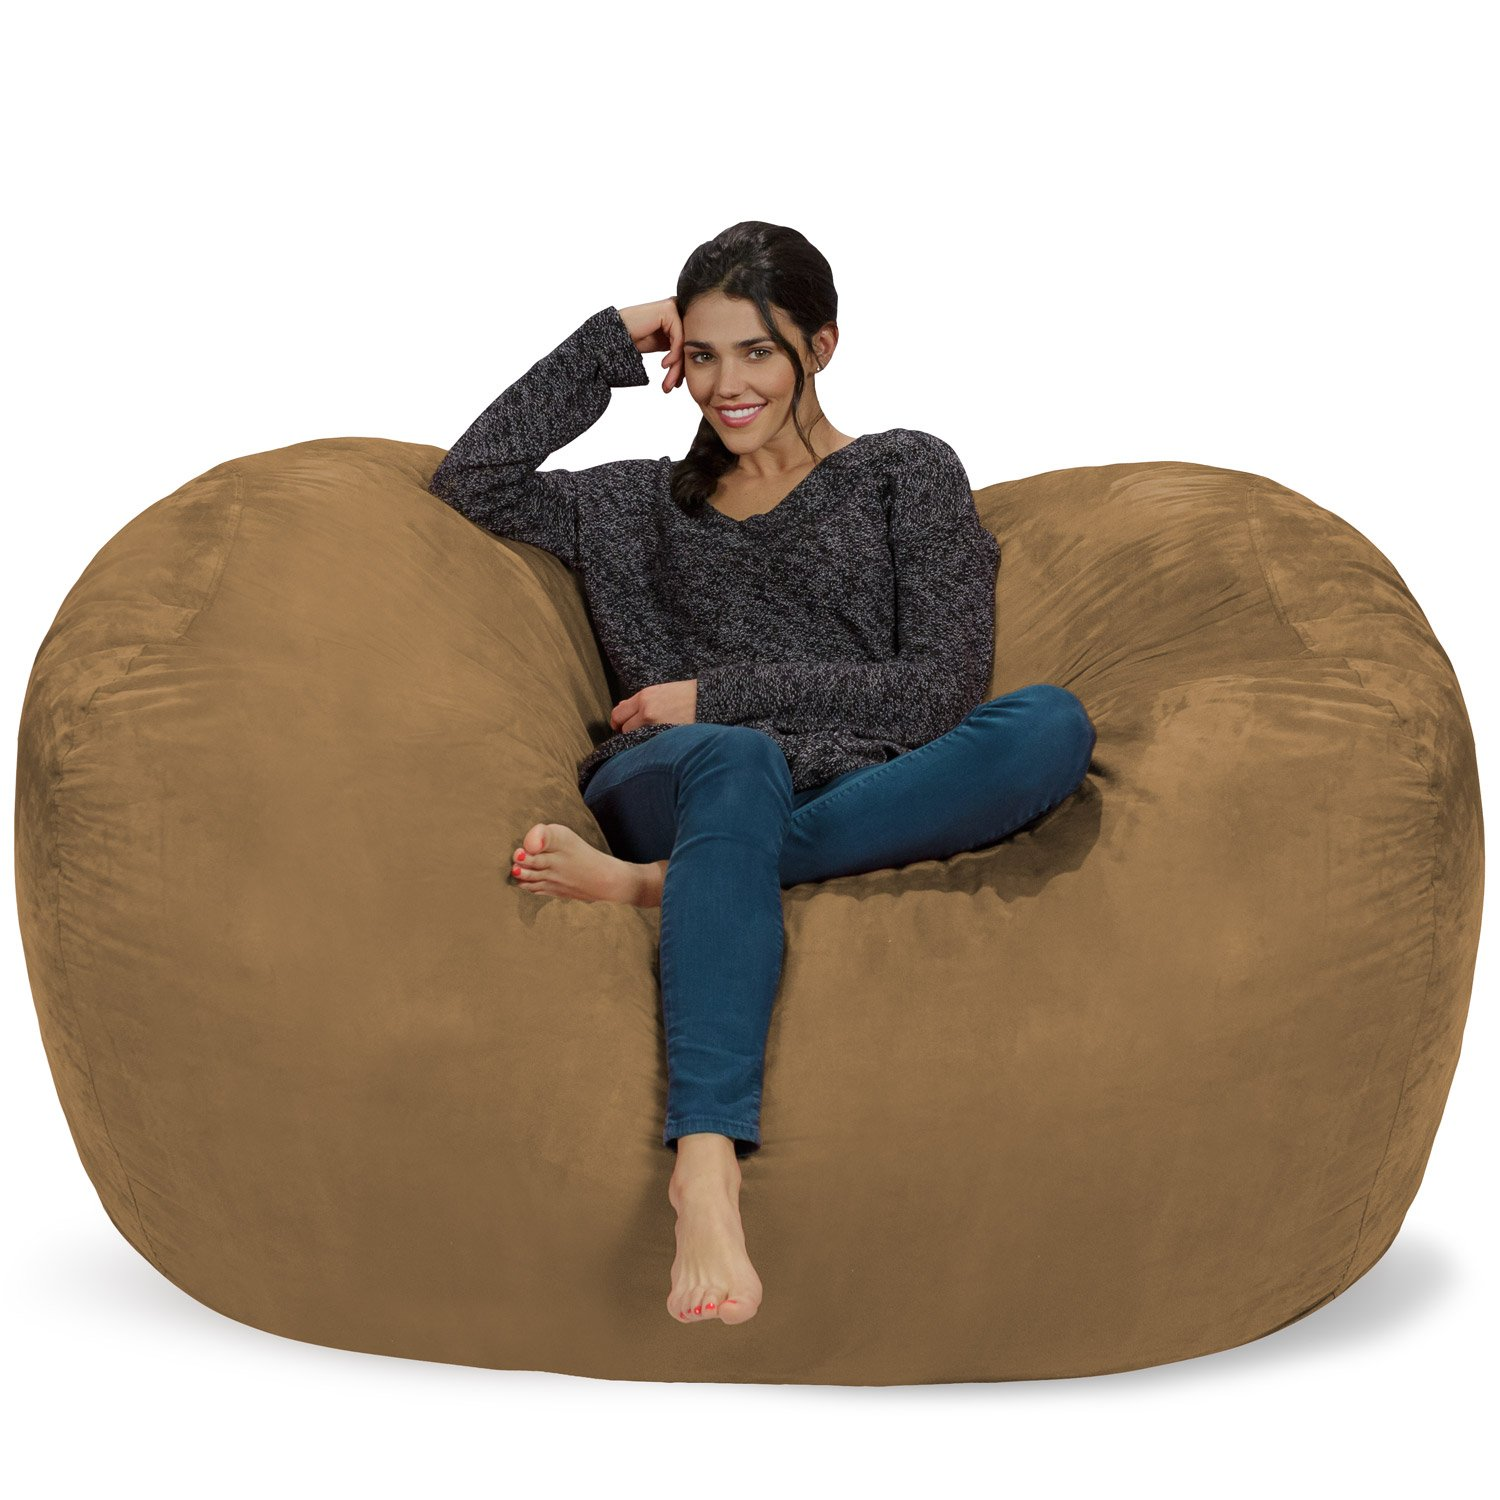 Chill Sack Memory Foam Bean Bag Lounger, 6-Feet, Earth